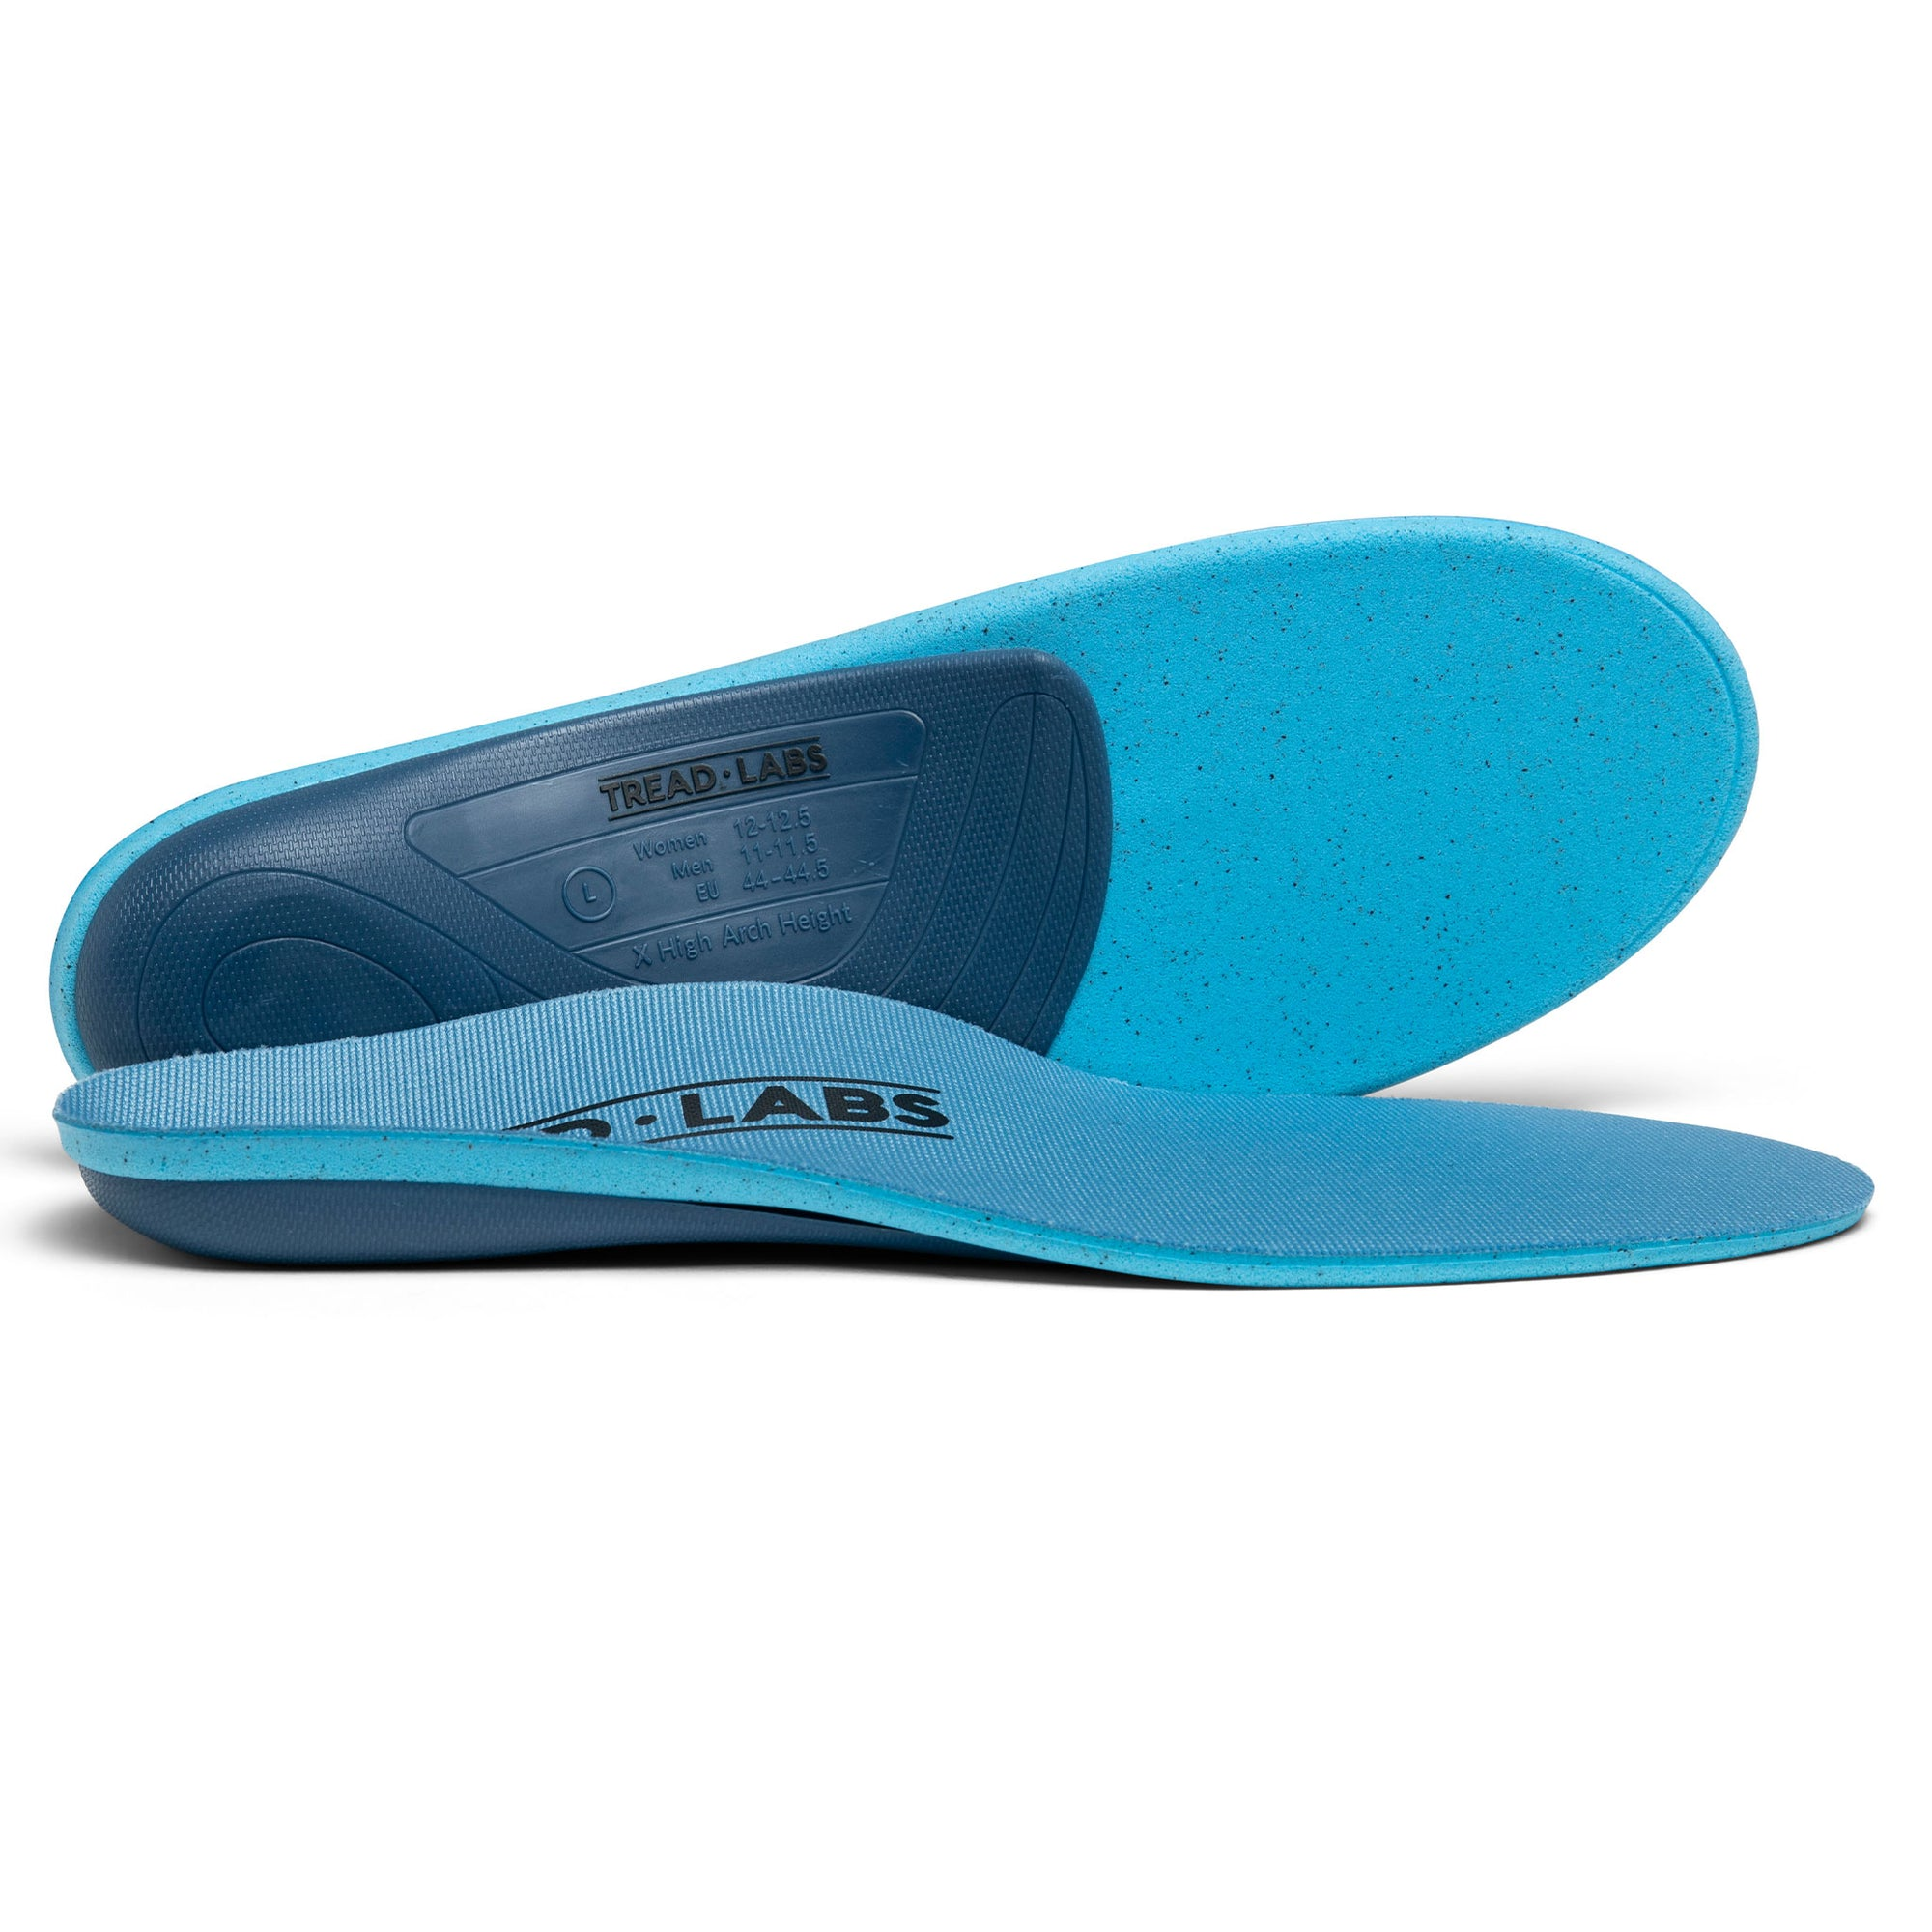 Pace Insoles For Plantar Fasciitis Pain Relief